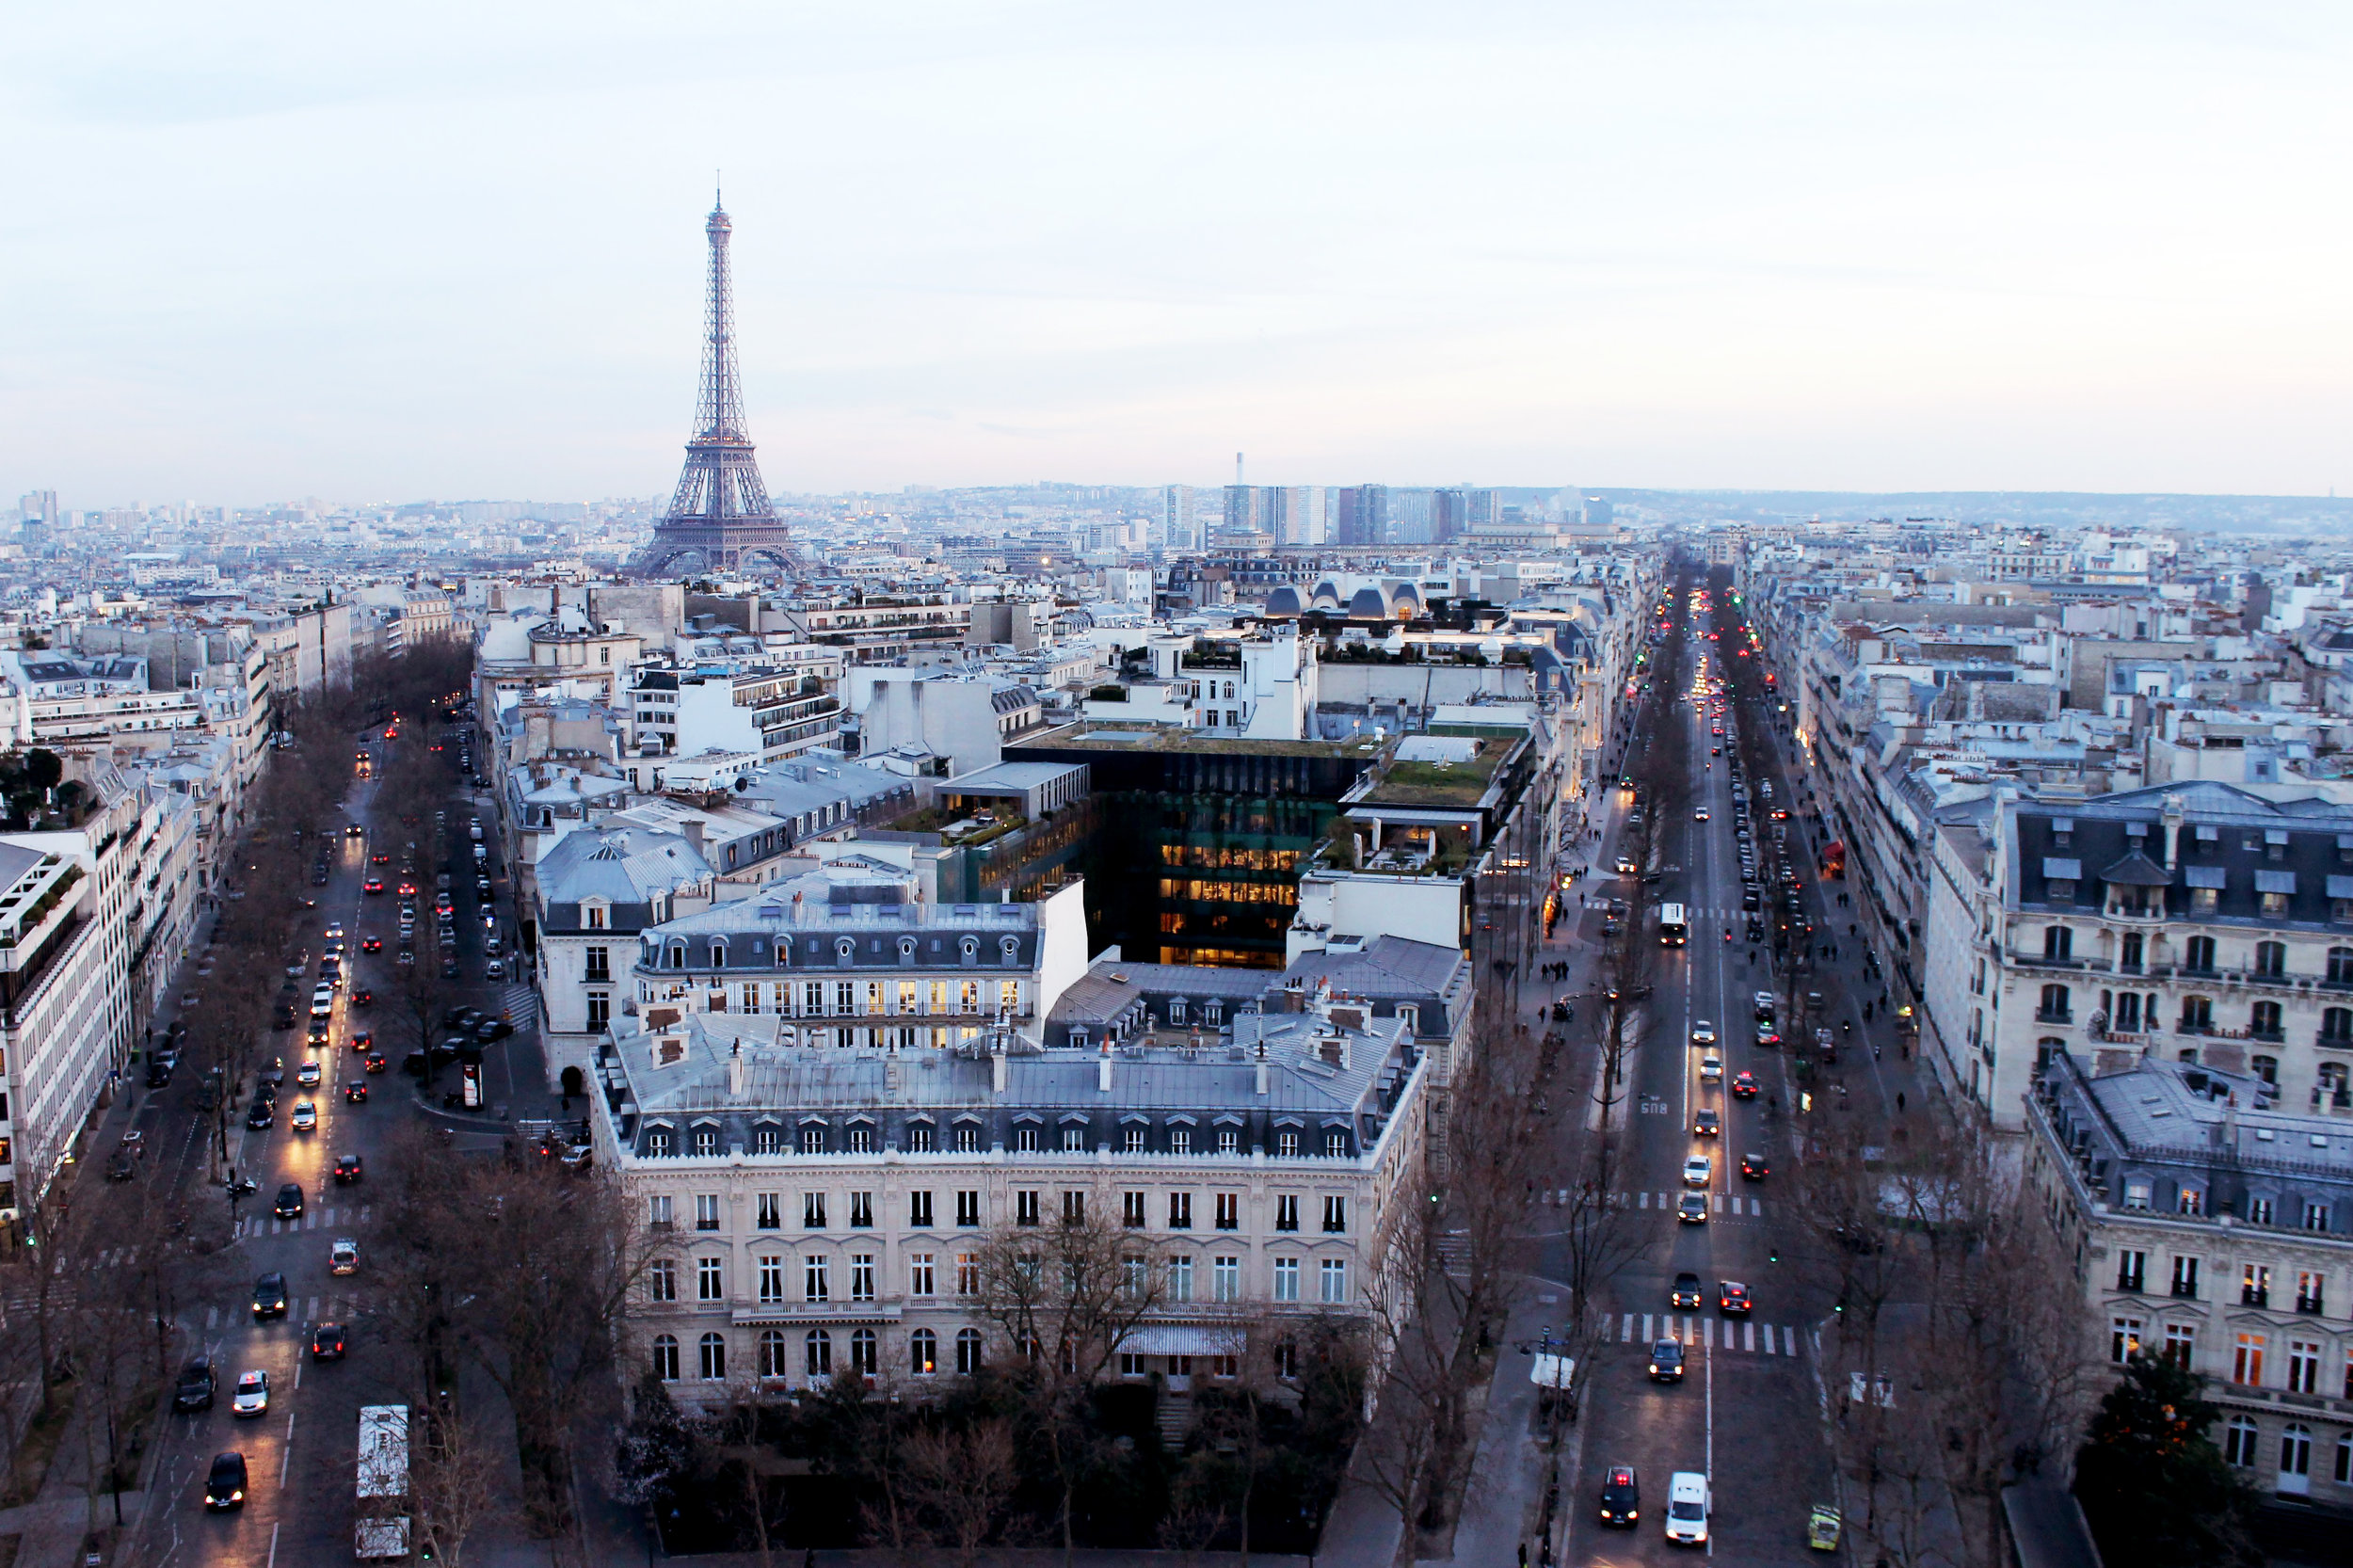 Sunset on top of the Champ Elysees